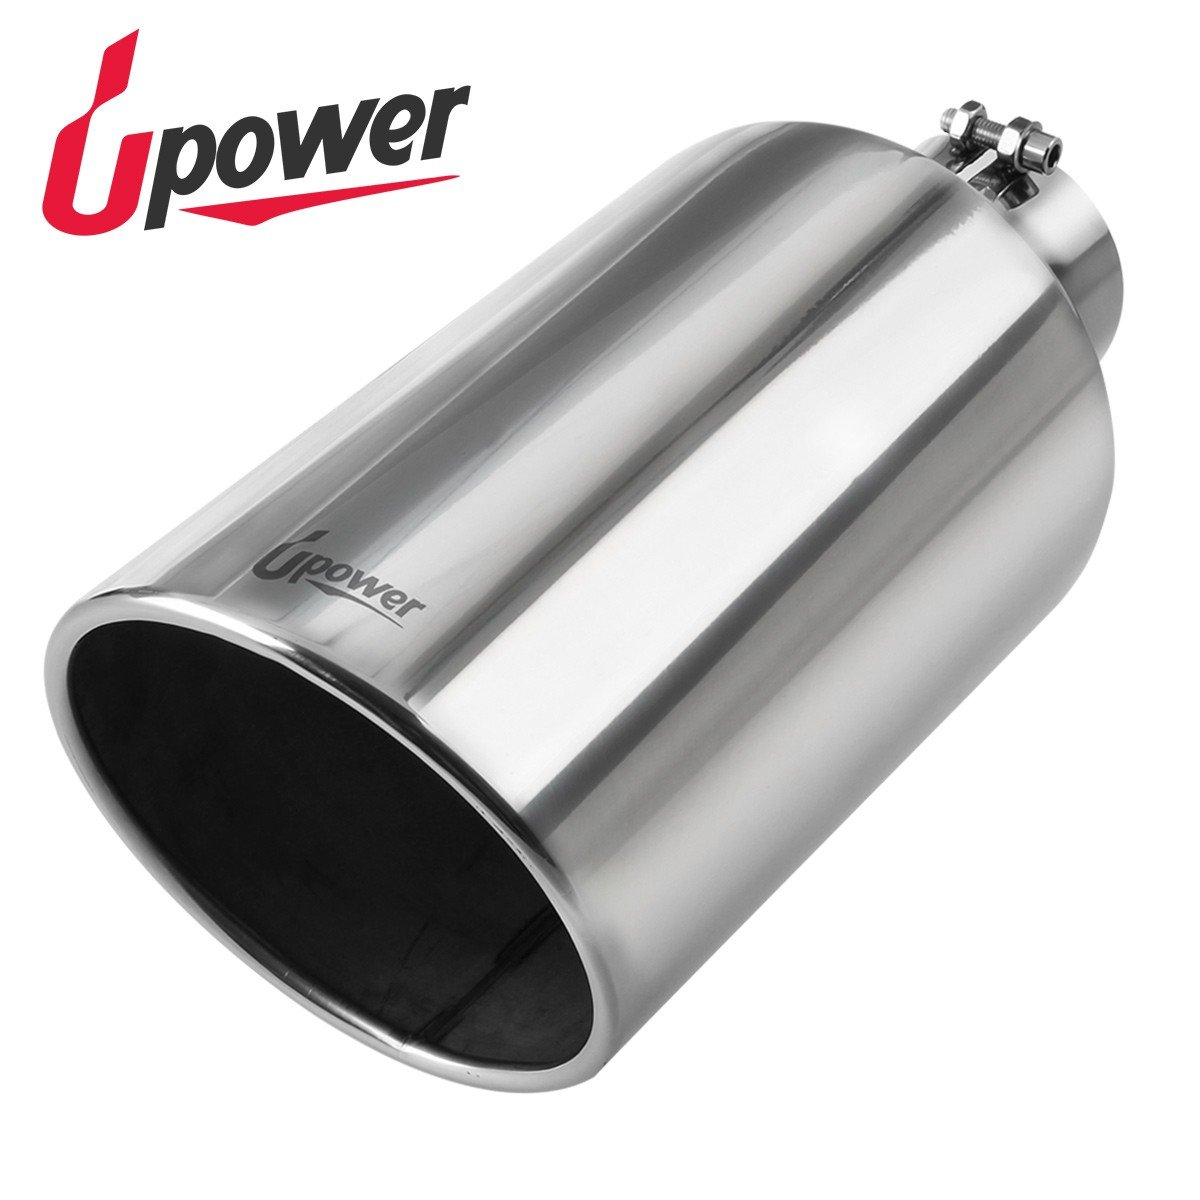 Upower Diesel 4 Inch Inlet to 8'' Exhaust Tip 304 Mirror Polished Exhaust Tailpipe 18'' Long 45Degree Angle Cut Bolt-On by Upower